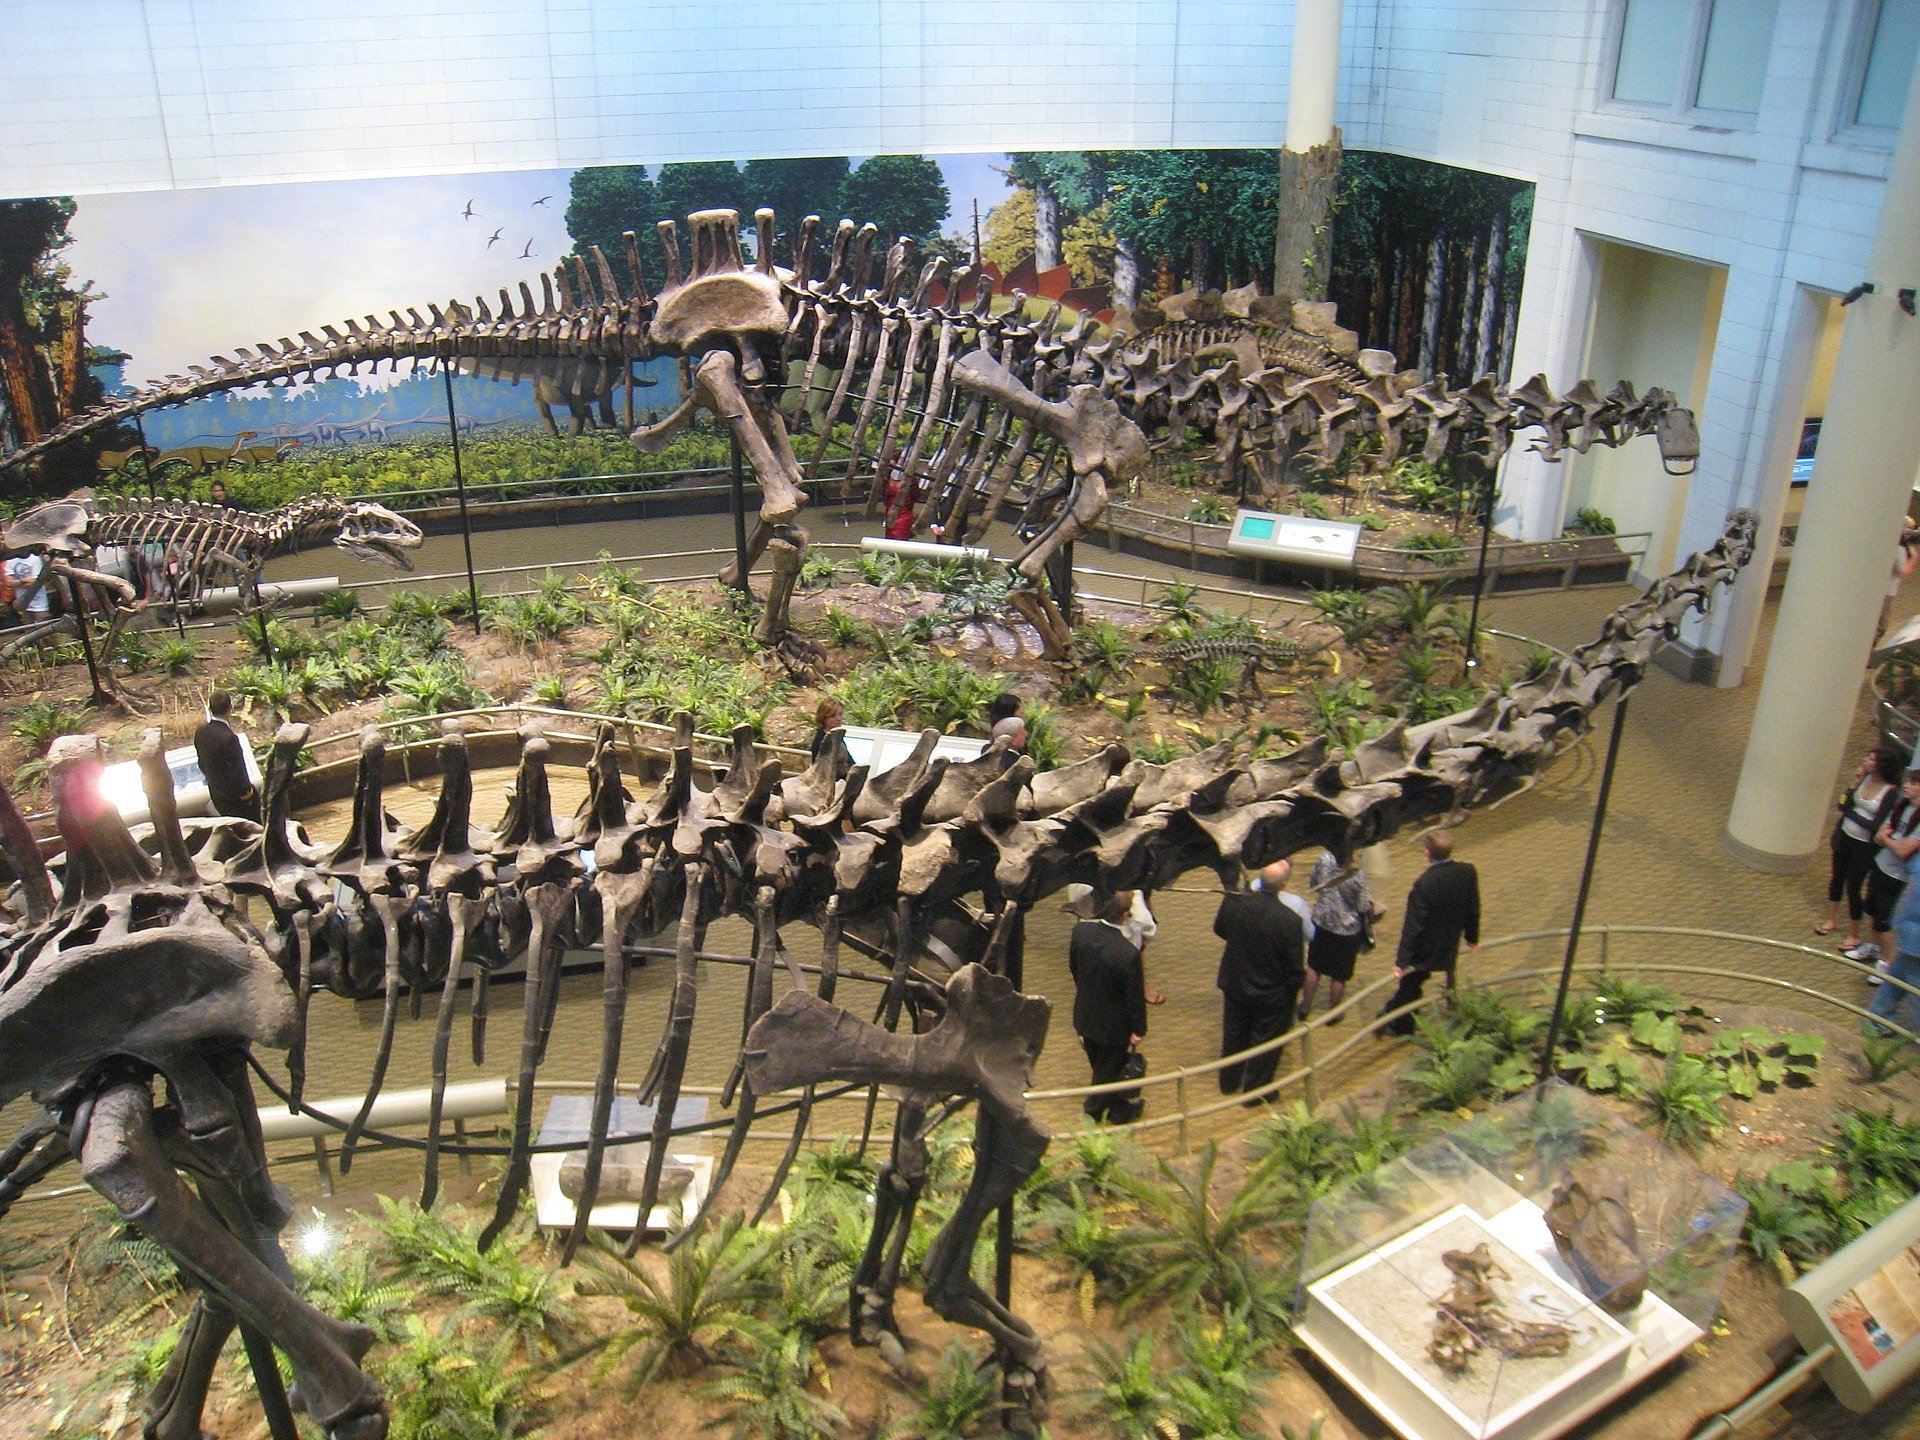 Dinosaurs in Their Time is a popular exhibit, featuring Diplodocus carnegii, named for the Carnegie Museum expedition that discovered the specimen.